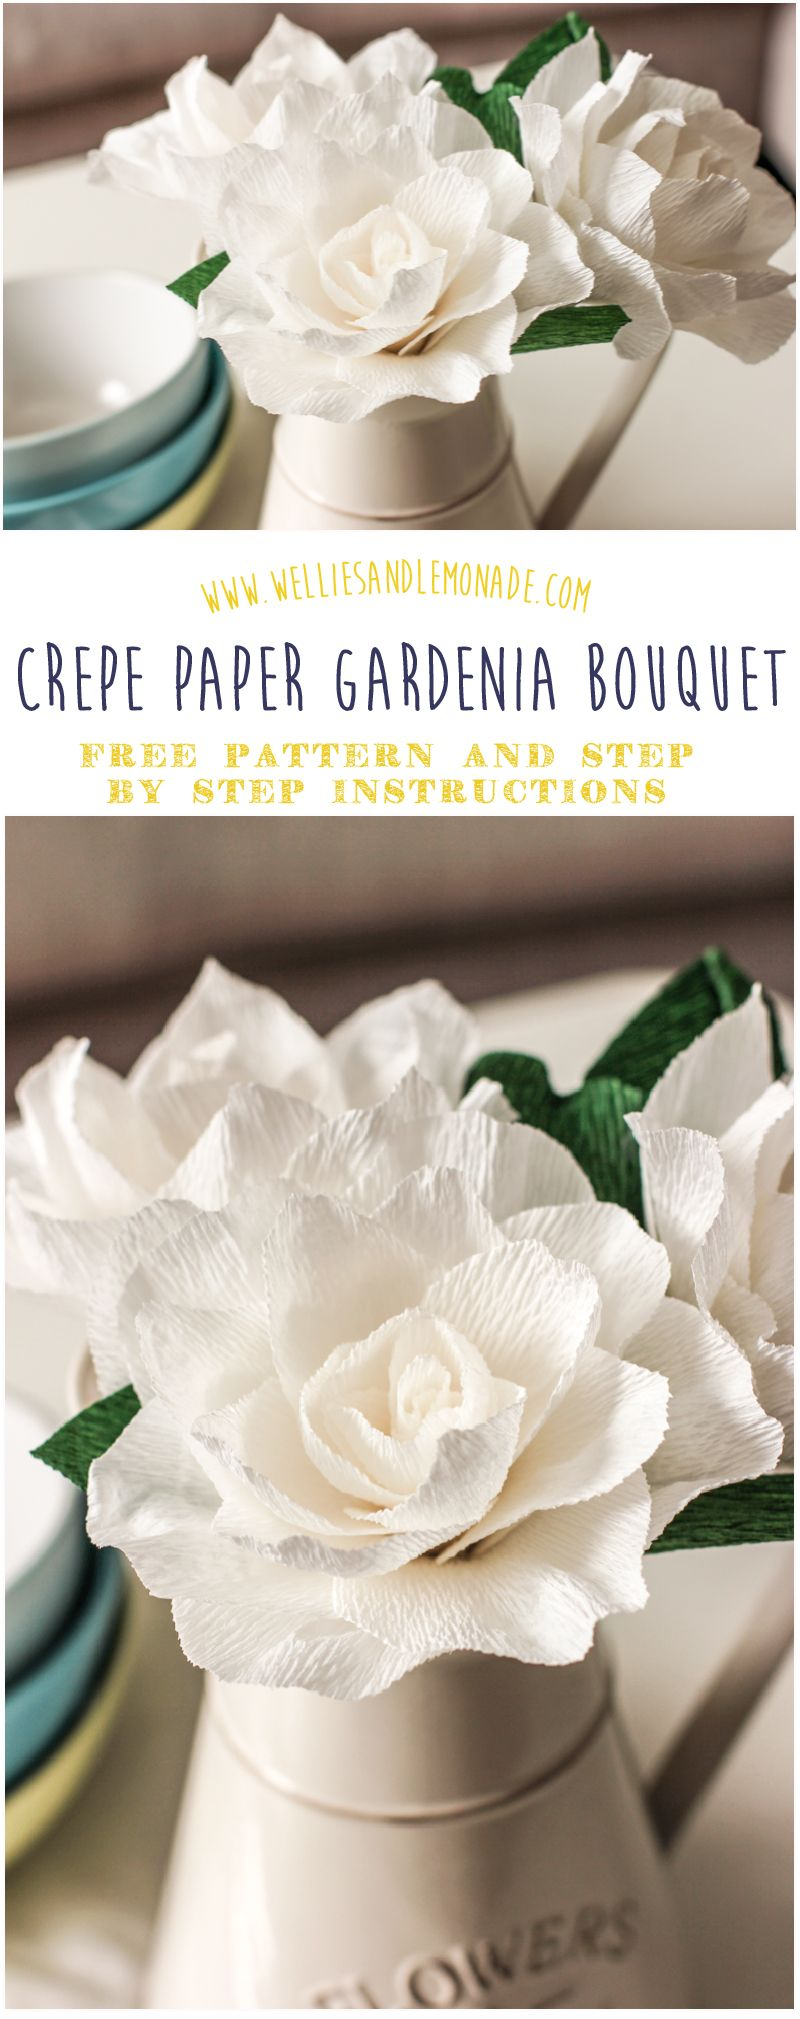 Gardenia crepe flower tutorial artcrafts pinterest gardenias learn how to make this beautiful crepe paper gardenia flower bouquet with my simple to follow step by step instructions click through to get your free izmirmasajfo